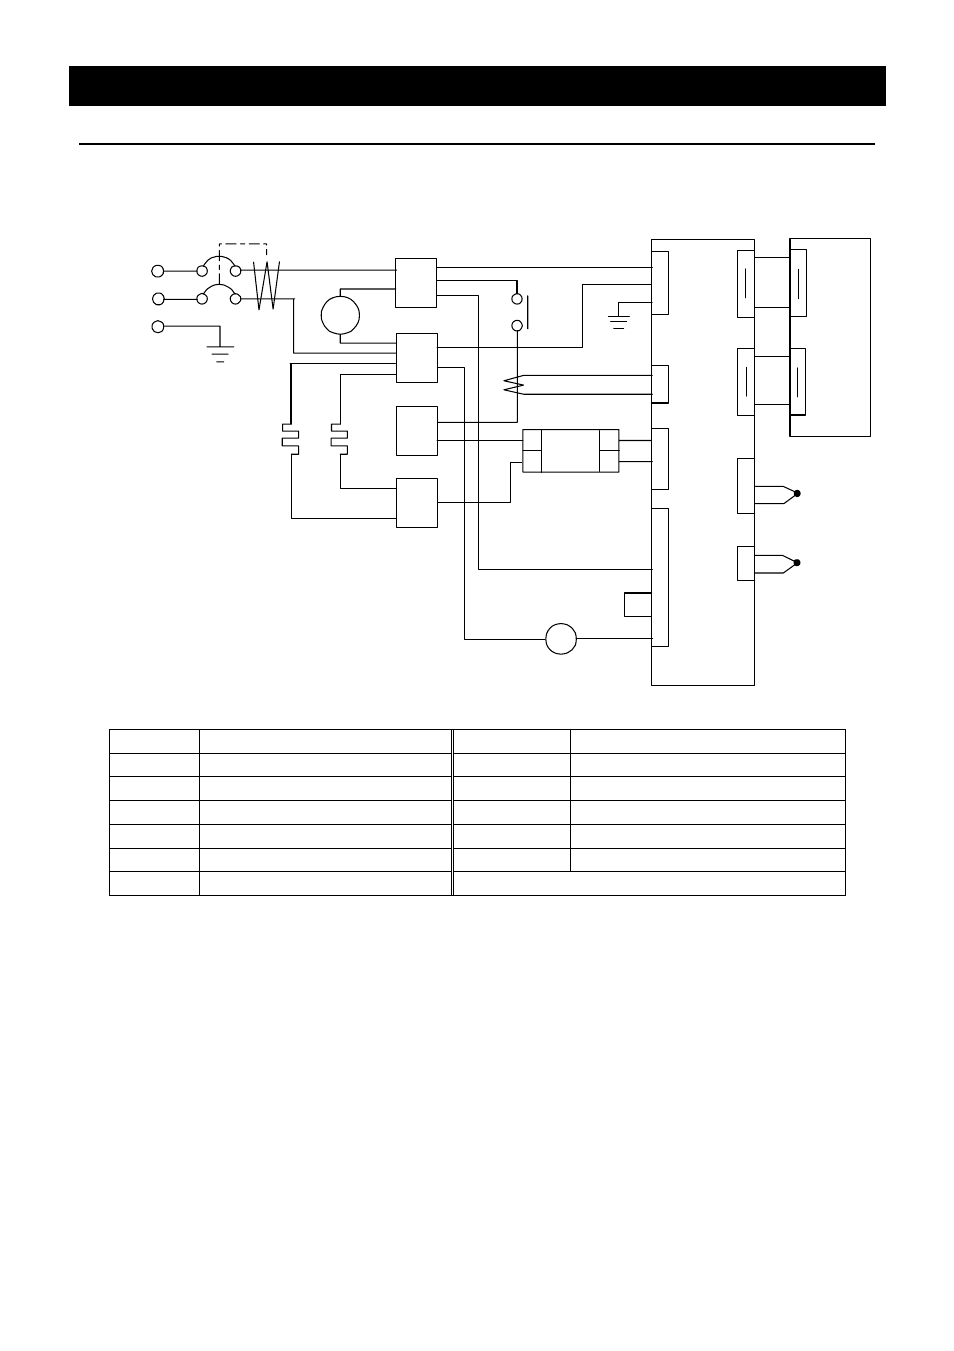 hight resolution of wiring diagram yamato scientific dkn 912 constant temperature drying oven user manual page 46 50